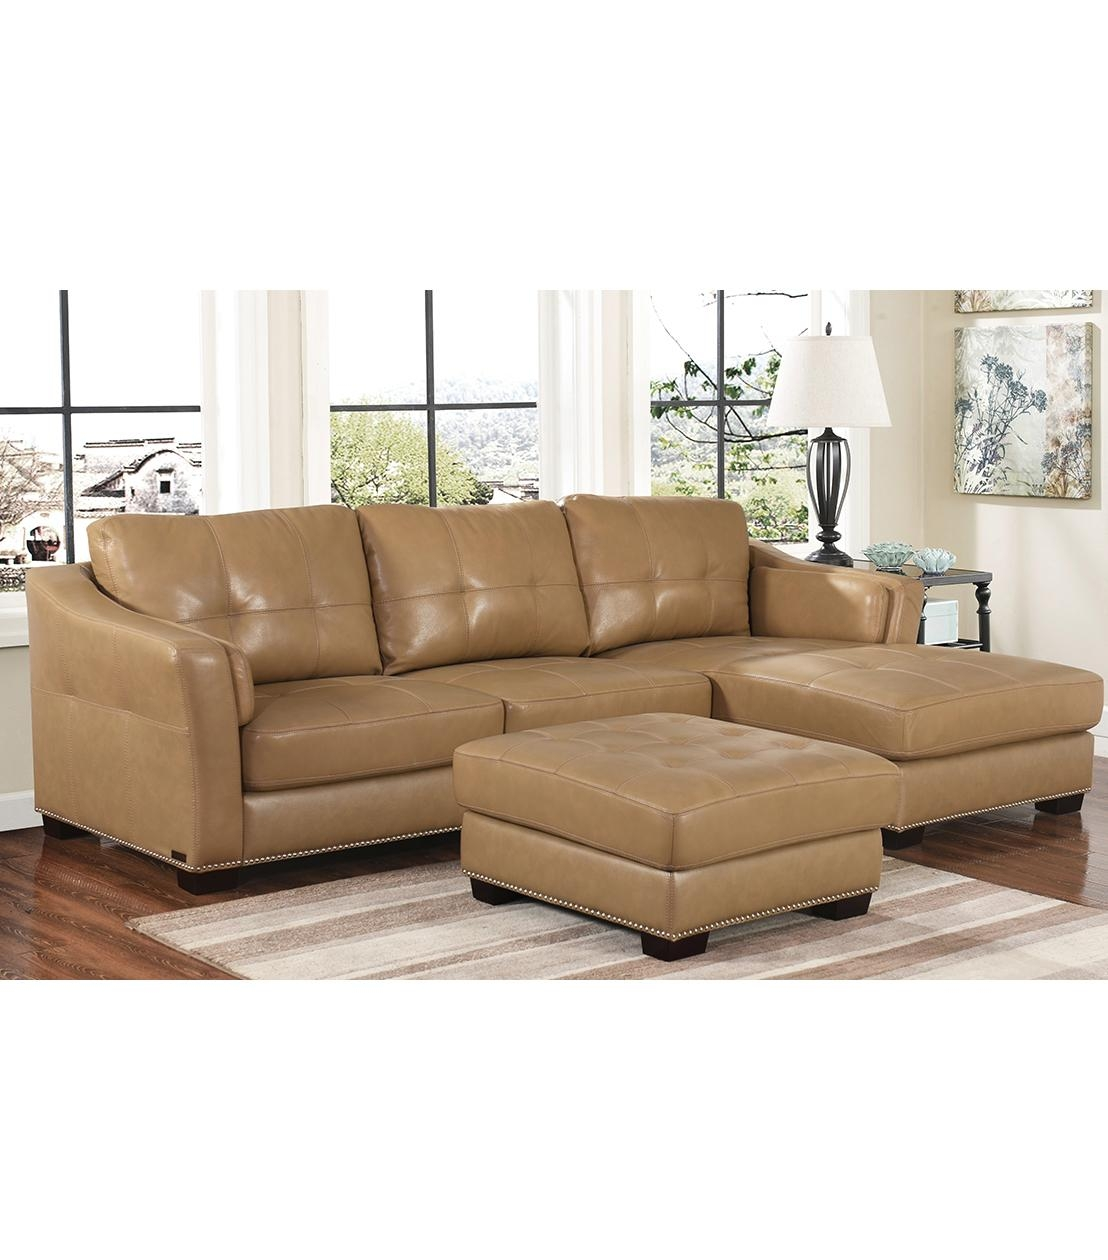 Sectionals : Chelsie Leather Sectional Within Abbyson Sectional Sofas (Image 12 of 20)